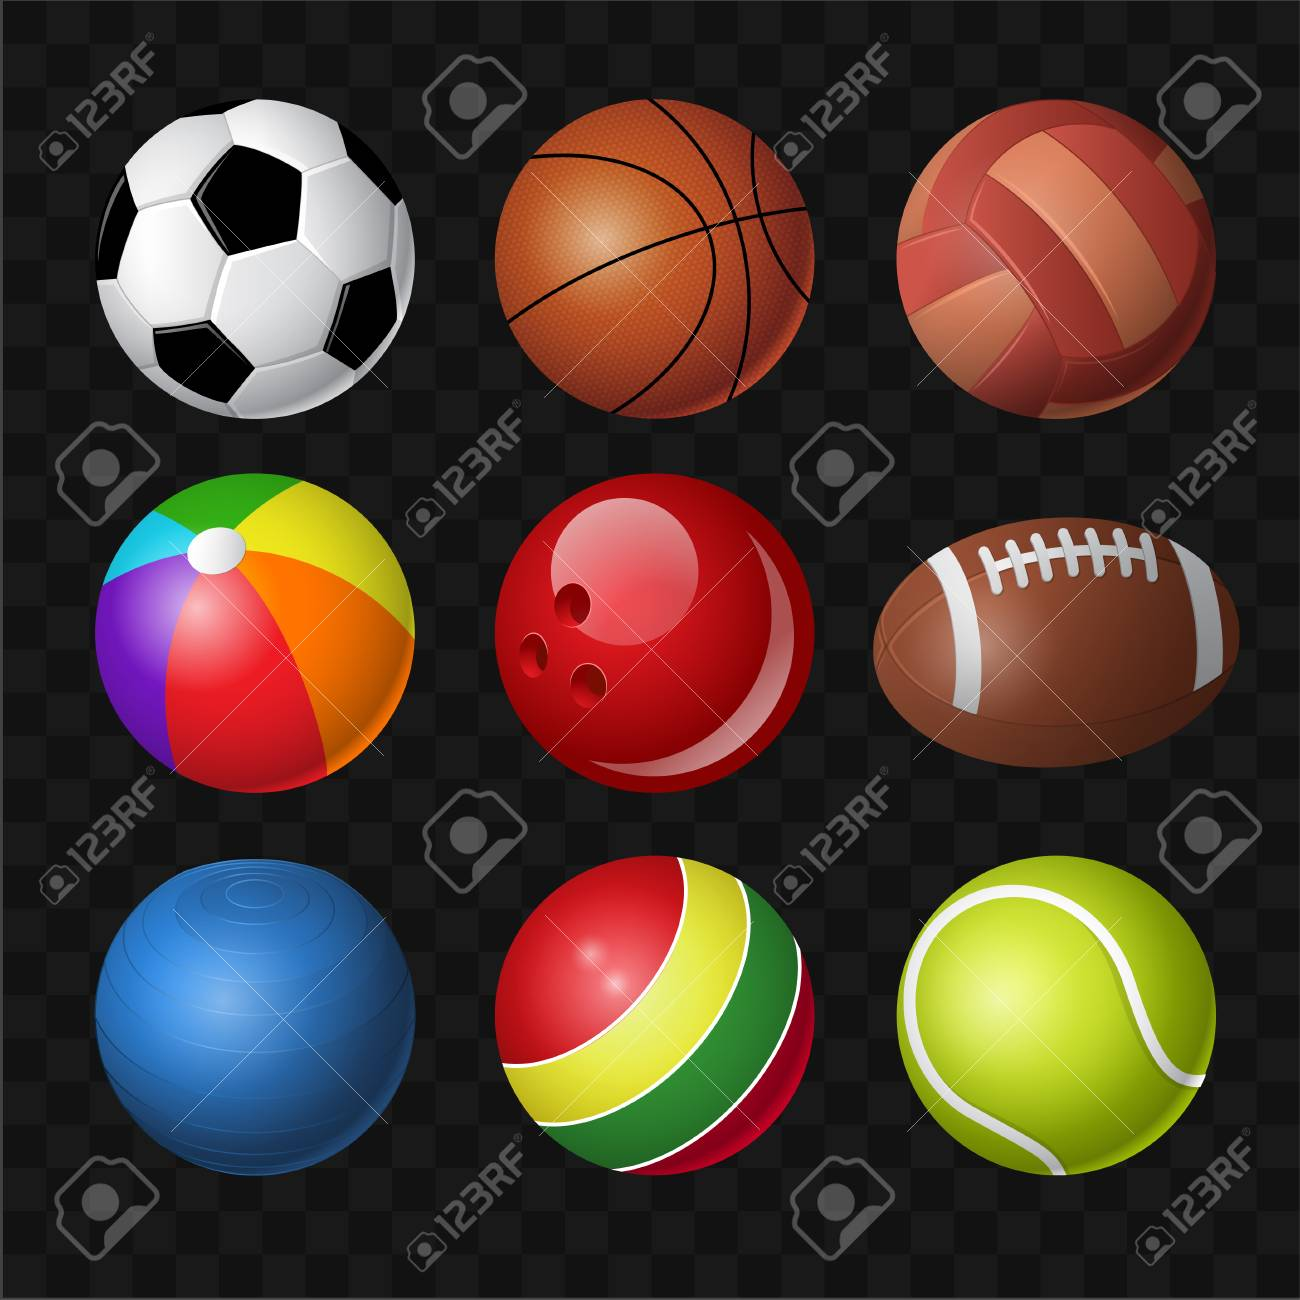 Balls Modern Vector Realistic Isolated Clip Art On Transparent Royalty Free Cliparts Vectors And Stock Illustration Image 128175602